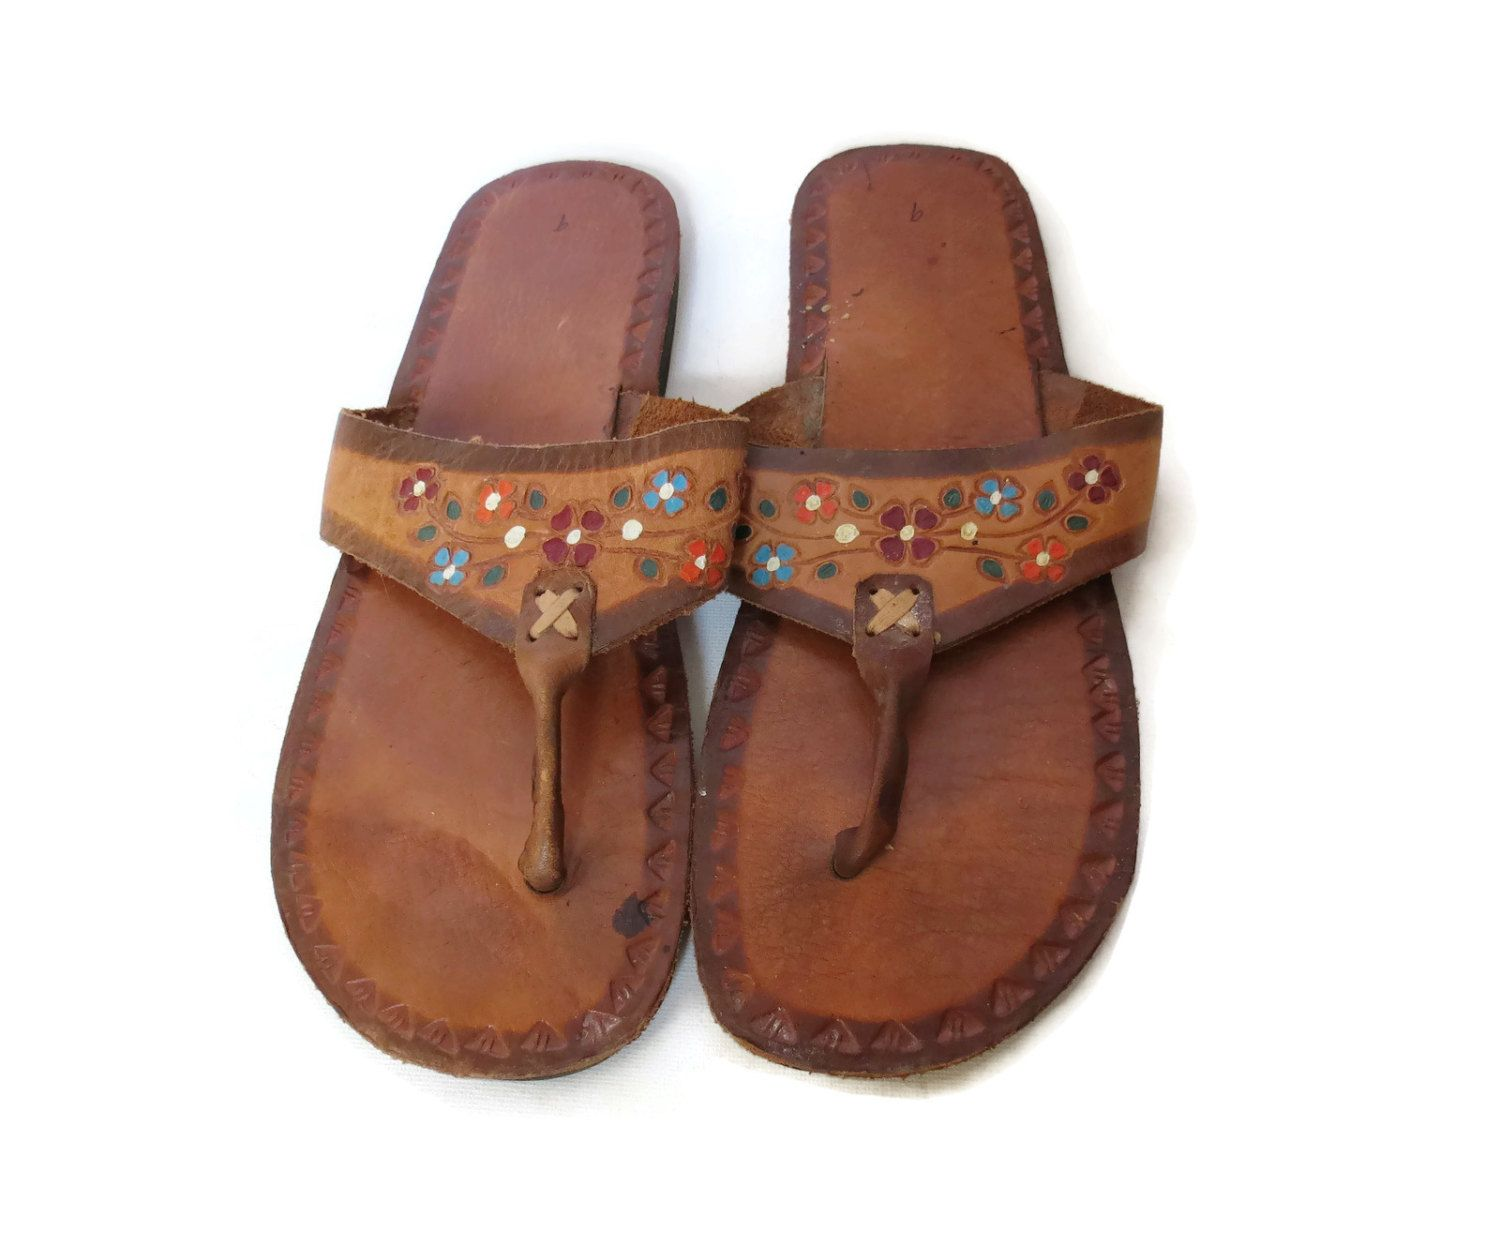 Womens sandals etsy - Mexican Leather Sandals Floral Leather Flip Flops Tooled Leather 70s Hippie Sandals Boho Sandal Size 12 13 14 Unisex Mens Womens